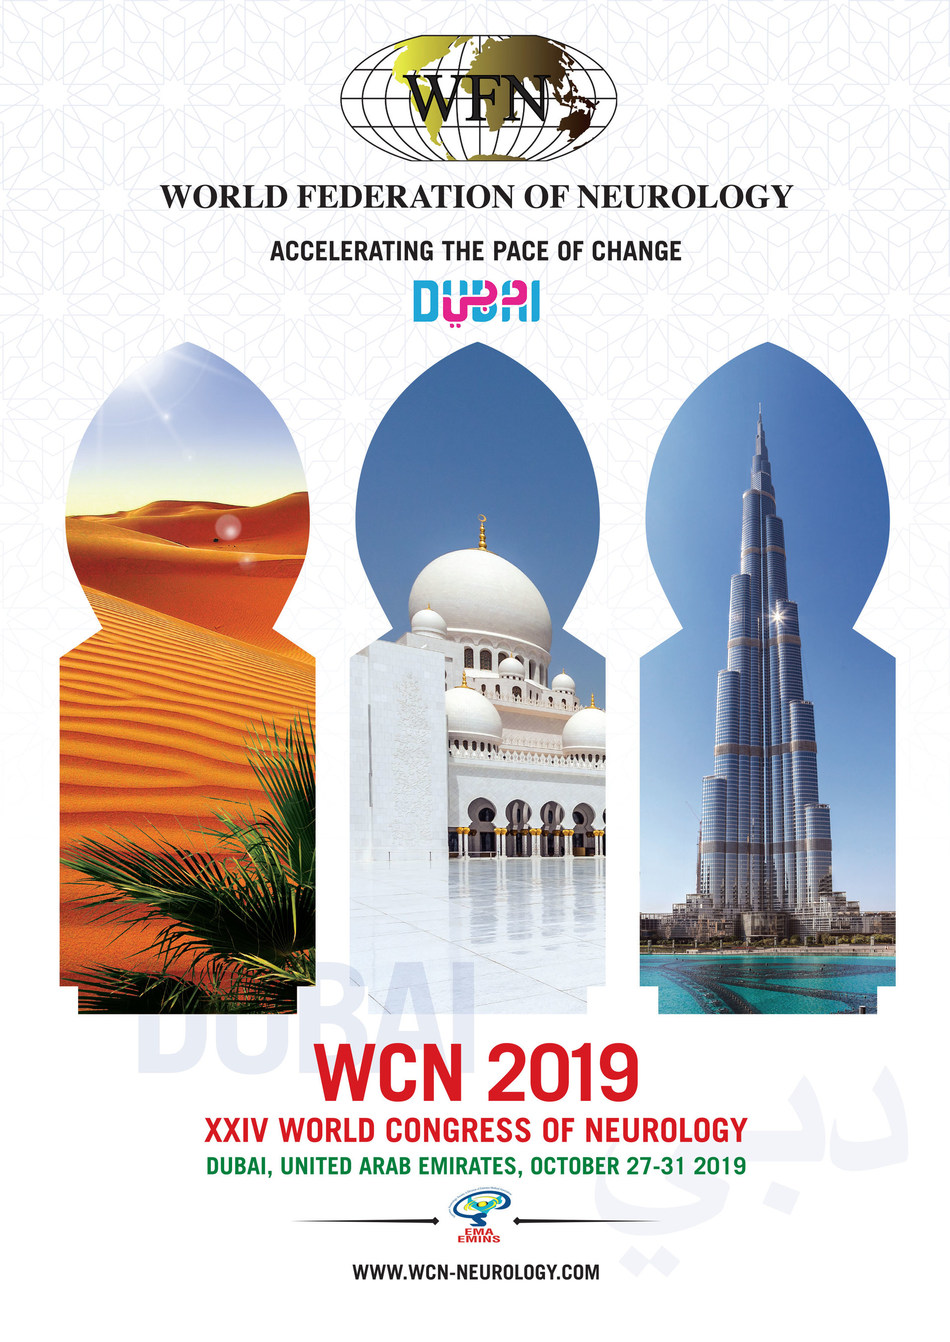 WCN 2019: Accelerating the Pace of Change